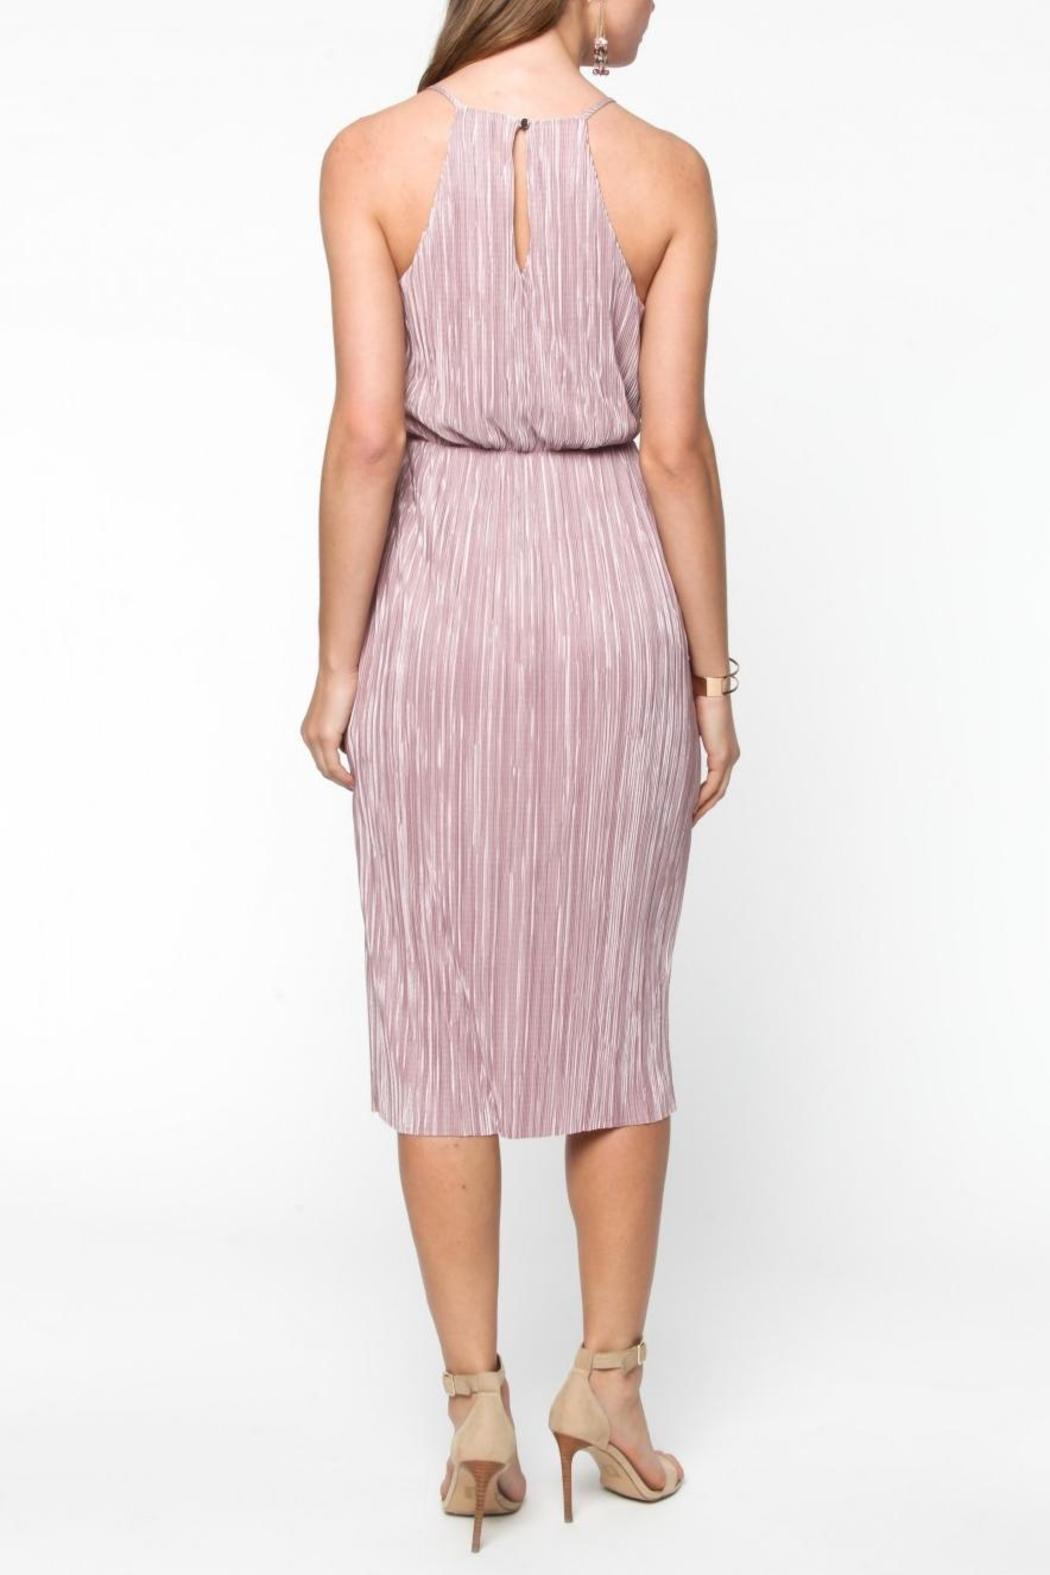 Everly Pleated Midi Dress - Side Cropped Image